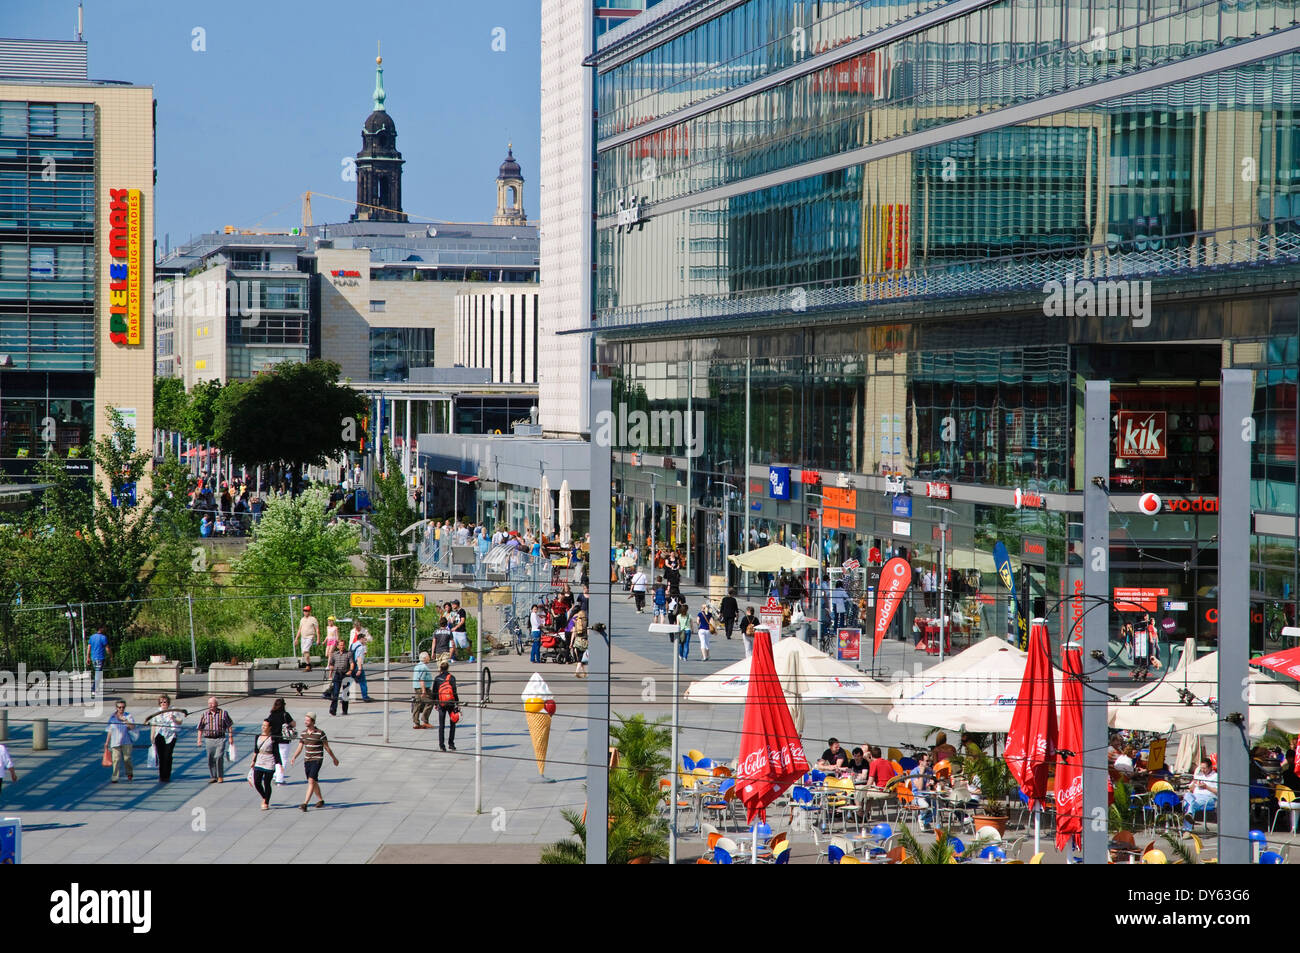 wiener platz and prager strasse pedestrian zone and shopping street stock photo royalty free. Black Bedroom Furniture Sets. Home Design Ideas